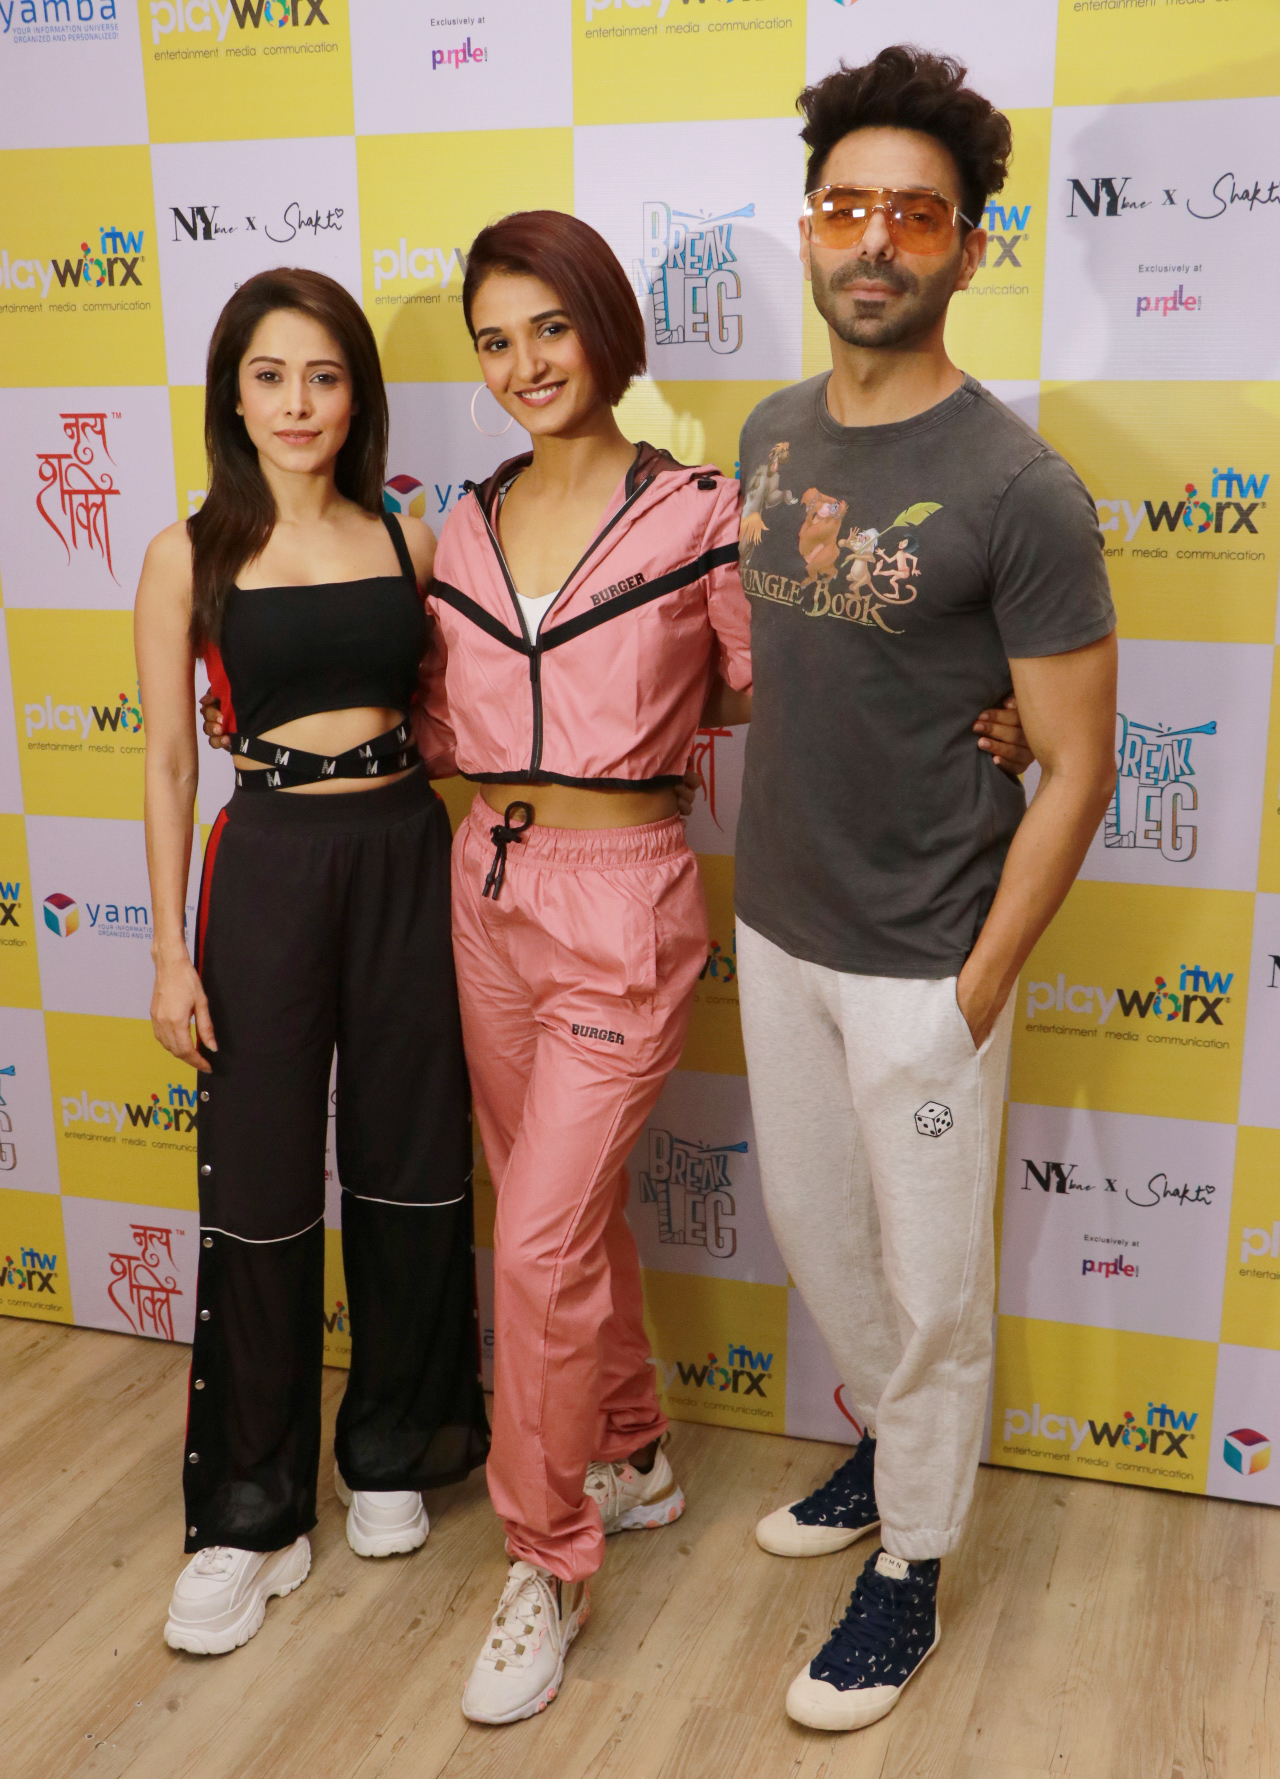 Bollywood actor Aparshkti Khurana & Nushrat Bharucha for episode shoot of Break A Leg Season 2 with host Shakti Mohan at Nritya Shakti Studio   Shoot of Break A Leg Season 2 host Shakti Mohan at Nritya Shakti Studio – Bank of Bollywood IMG 5474